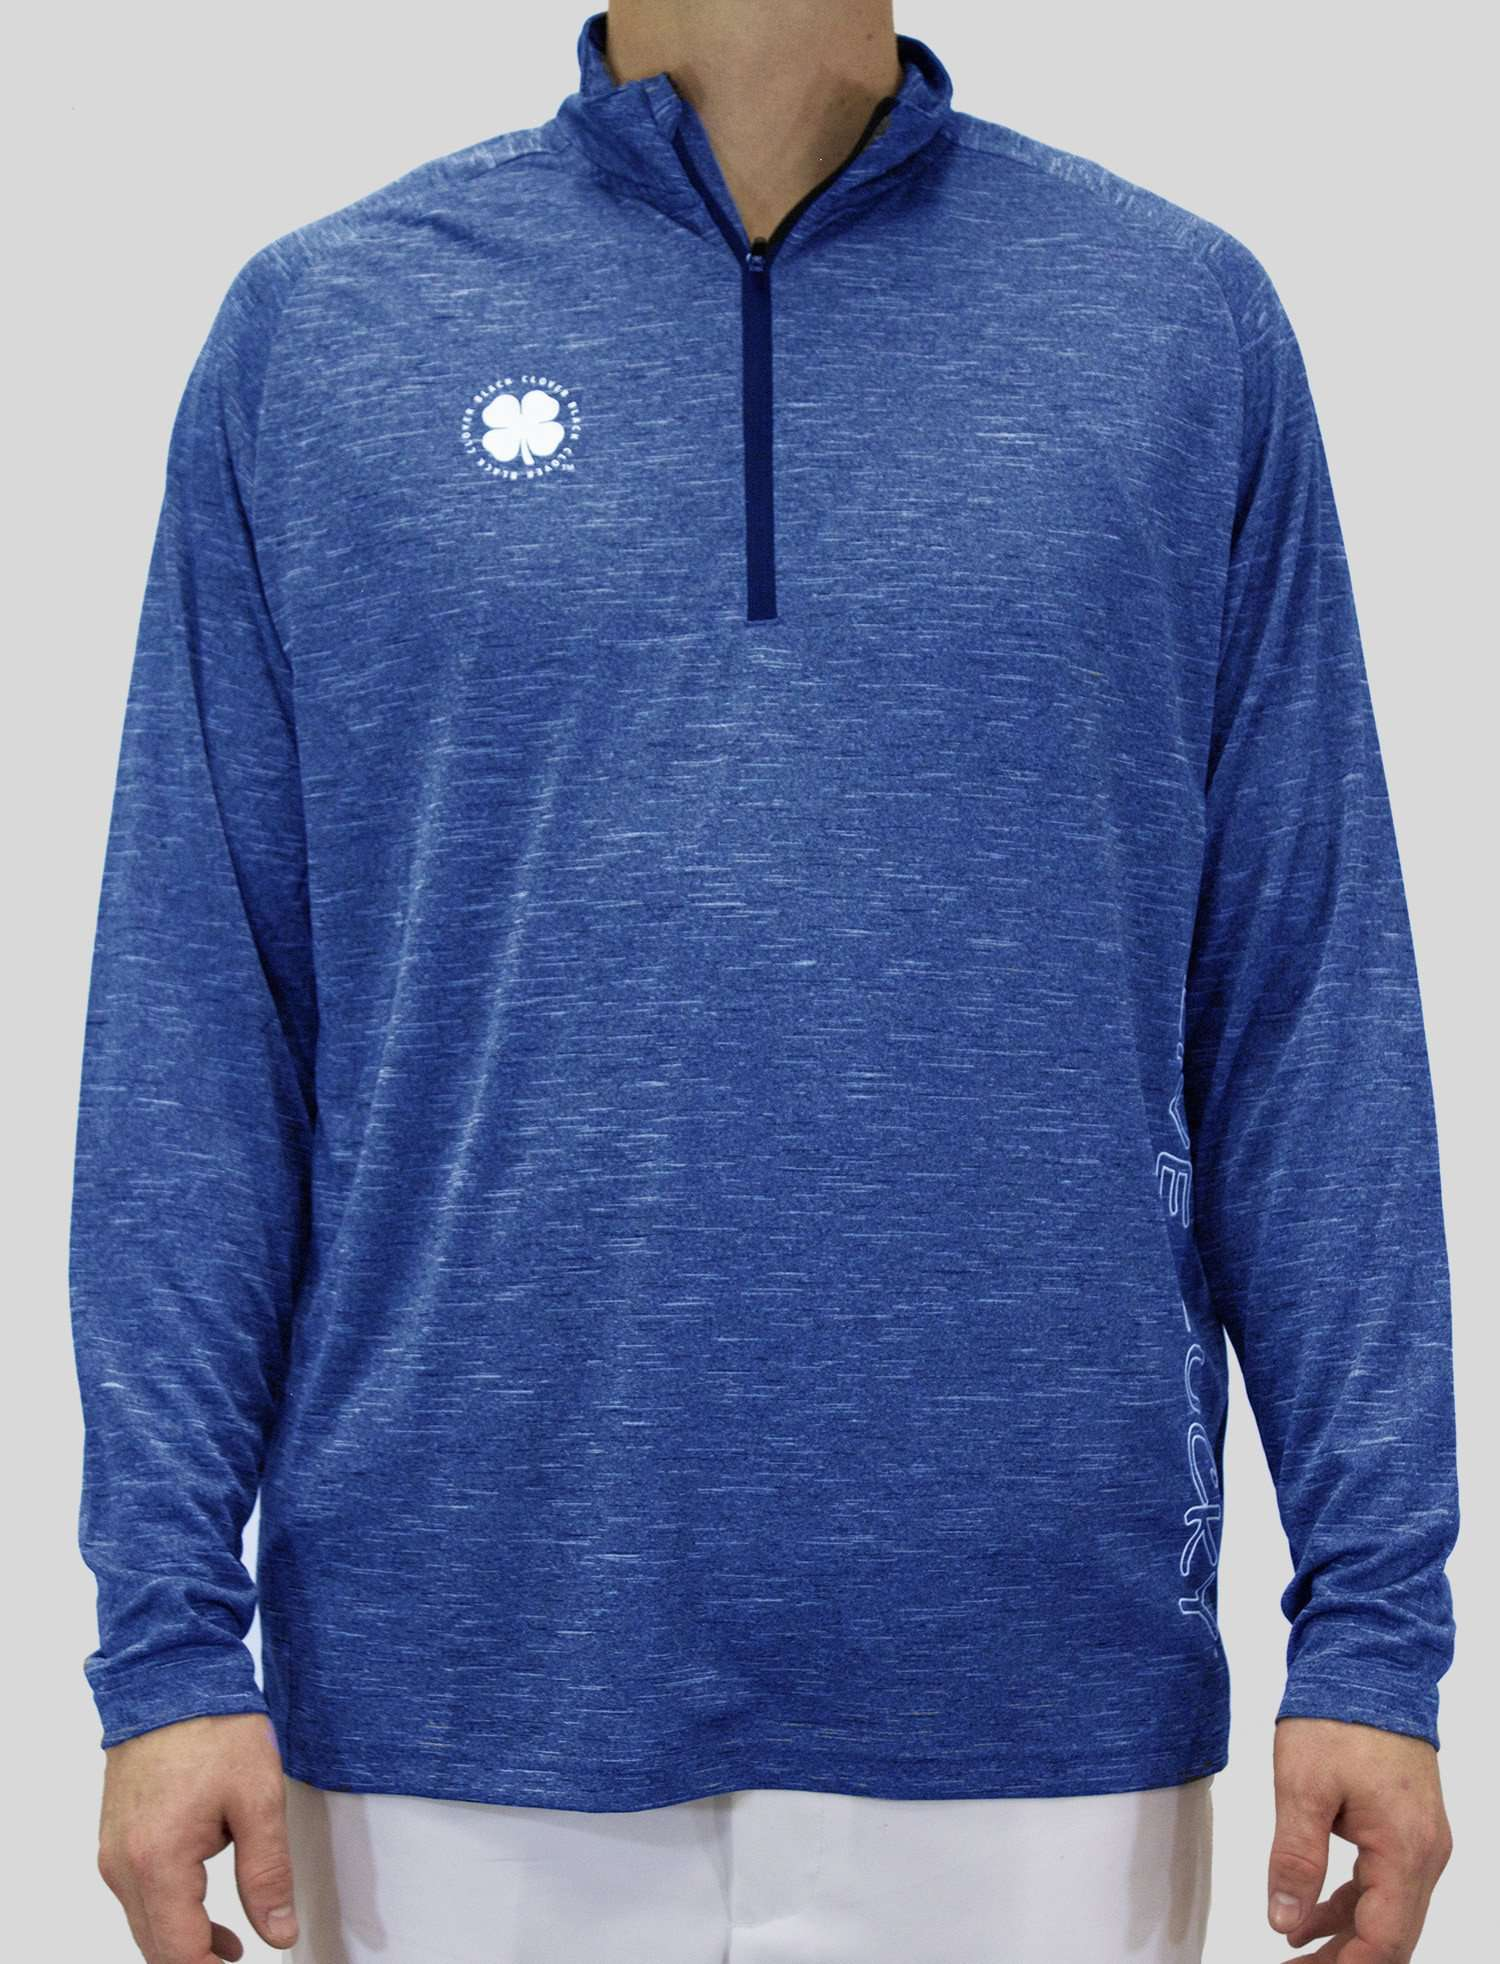 Men's Lucky Sport - Royal